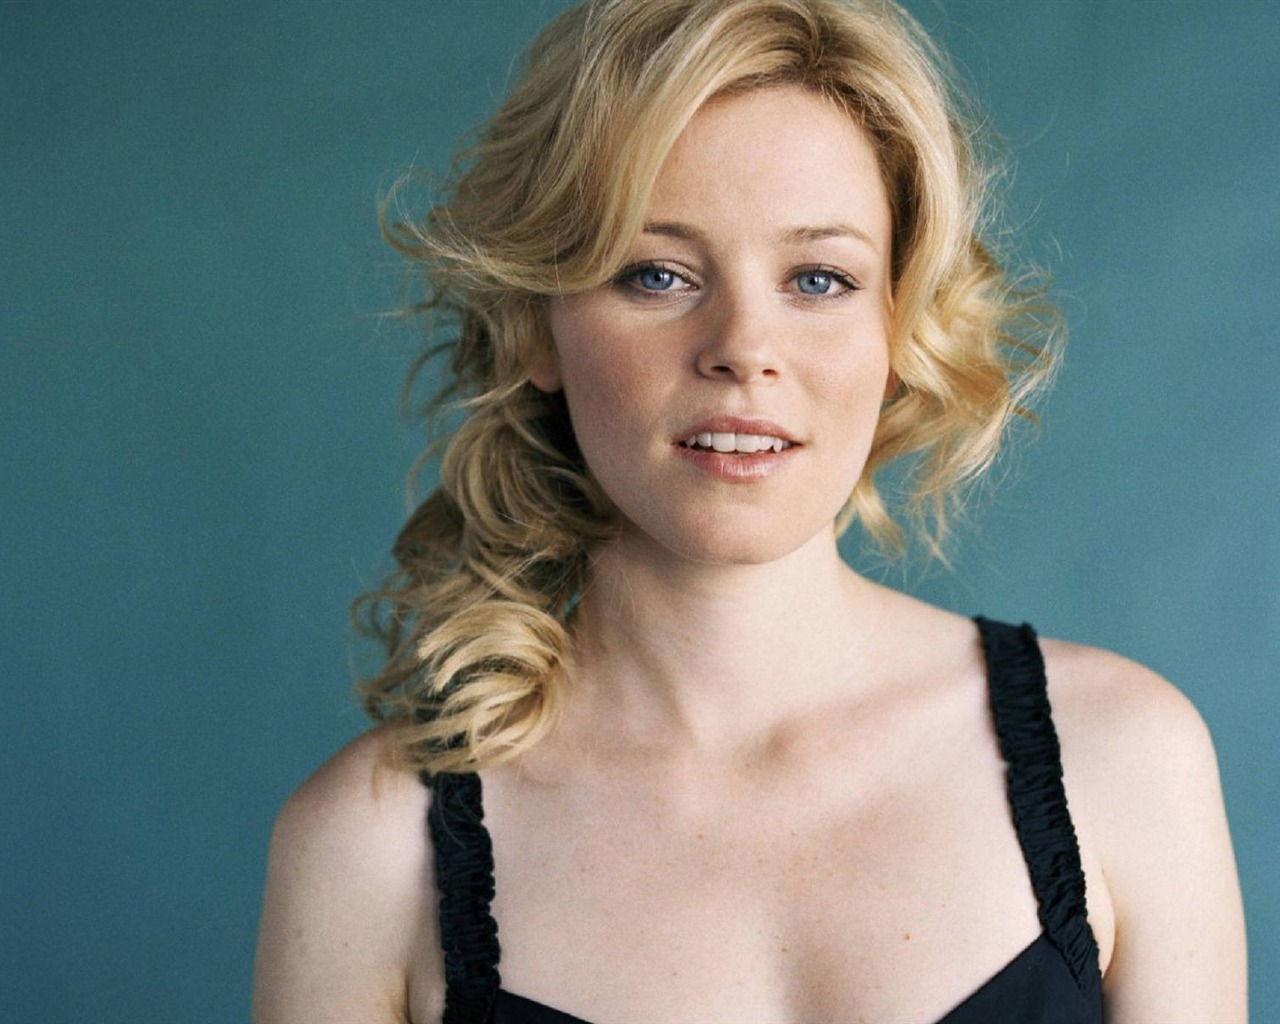 Elizabeth Banks Young HD Wallpaper Background Images 1280x1024